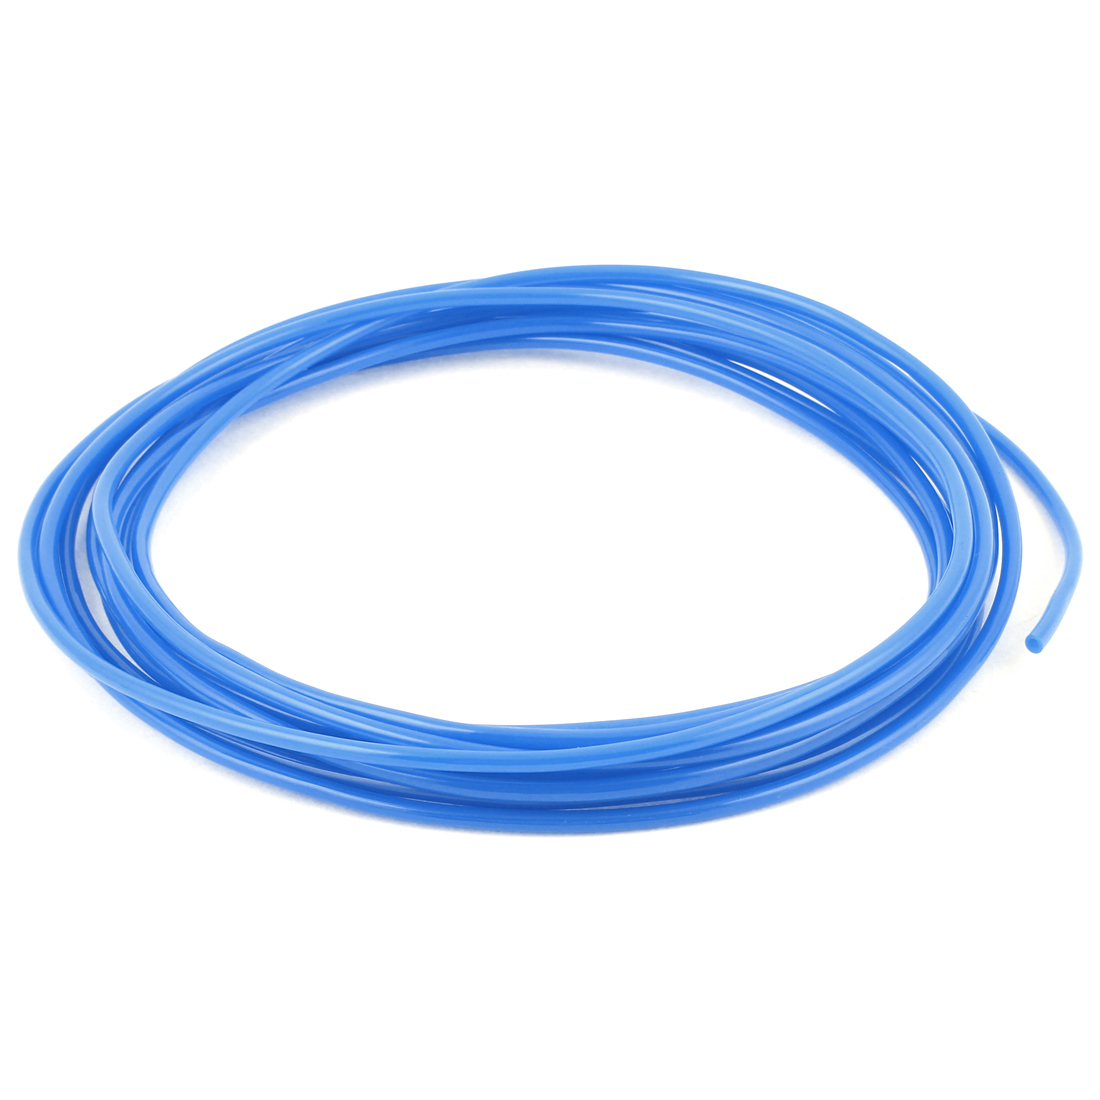 4mm OD 2.5mm ID Polyurethane PU Pneumatic Air Tubing Pipe Hose 6M Blue